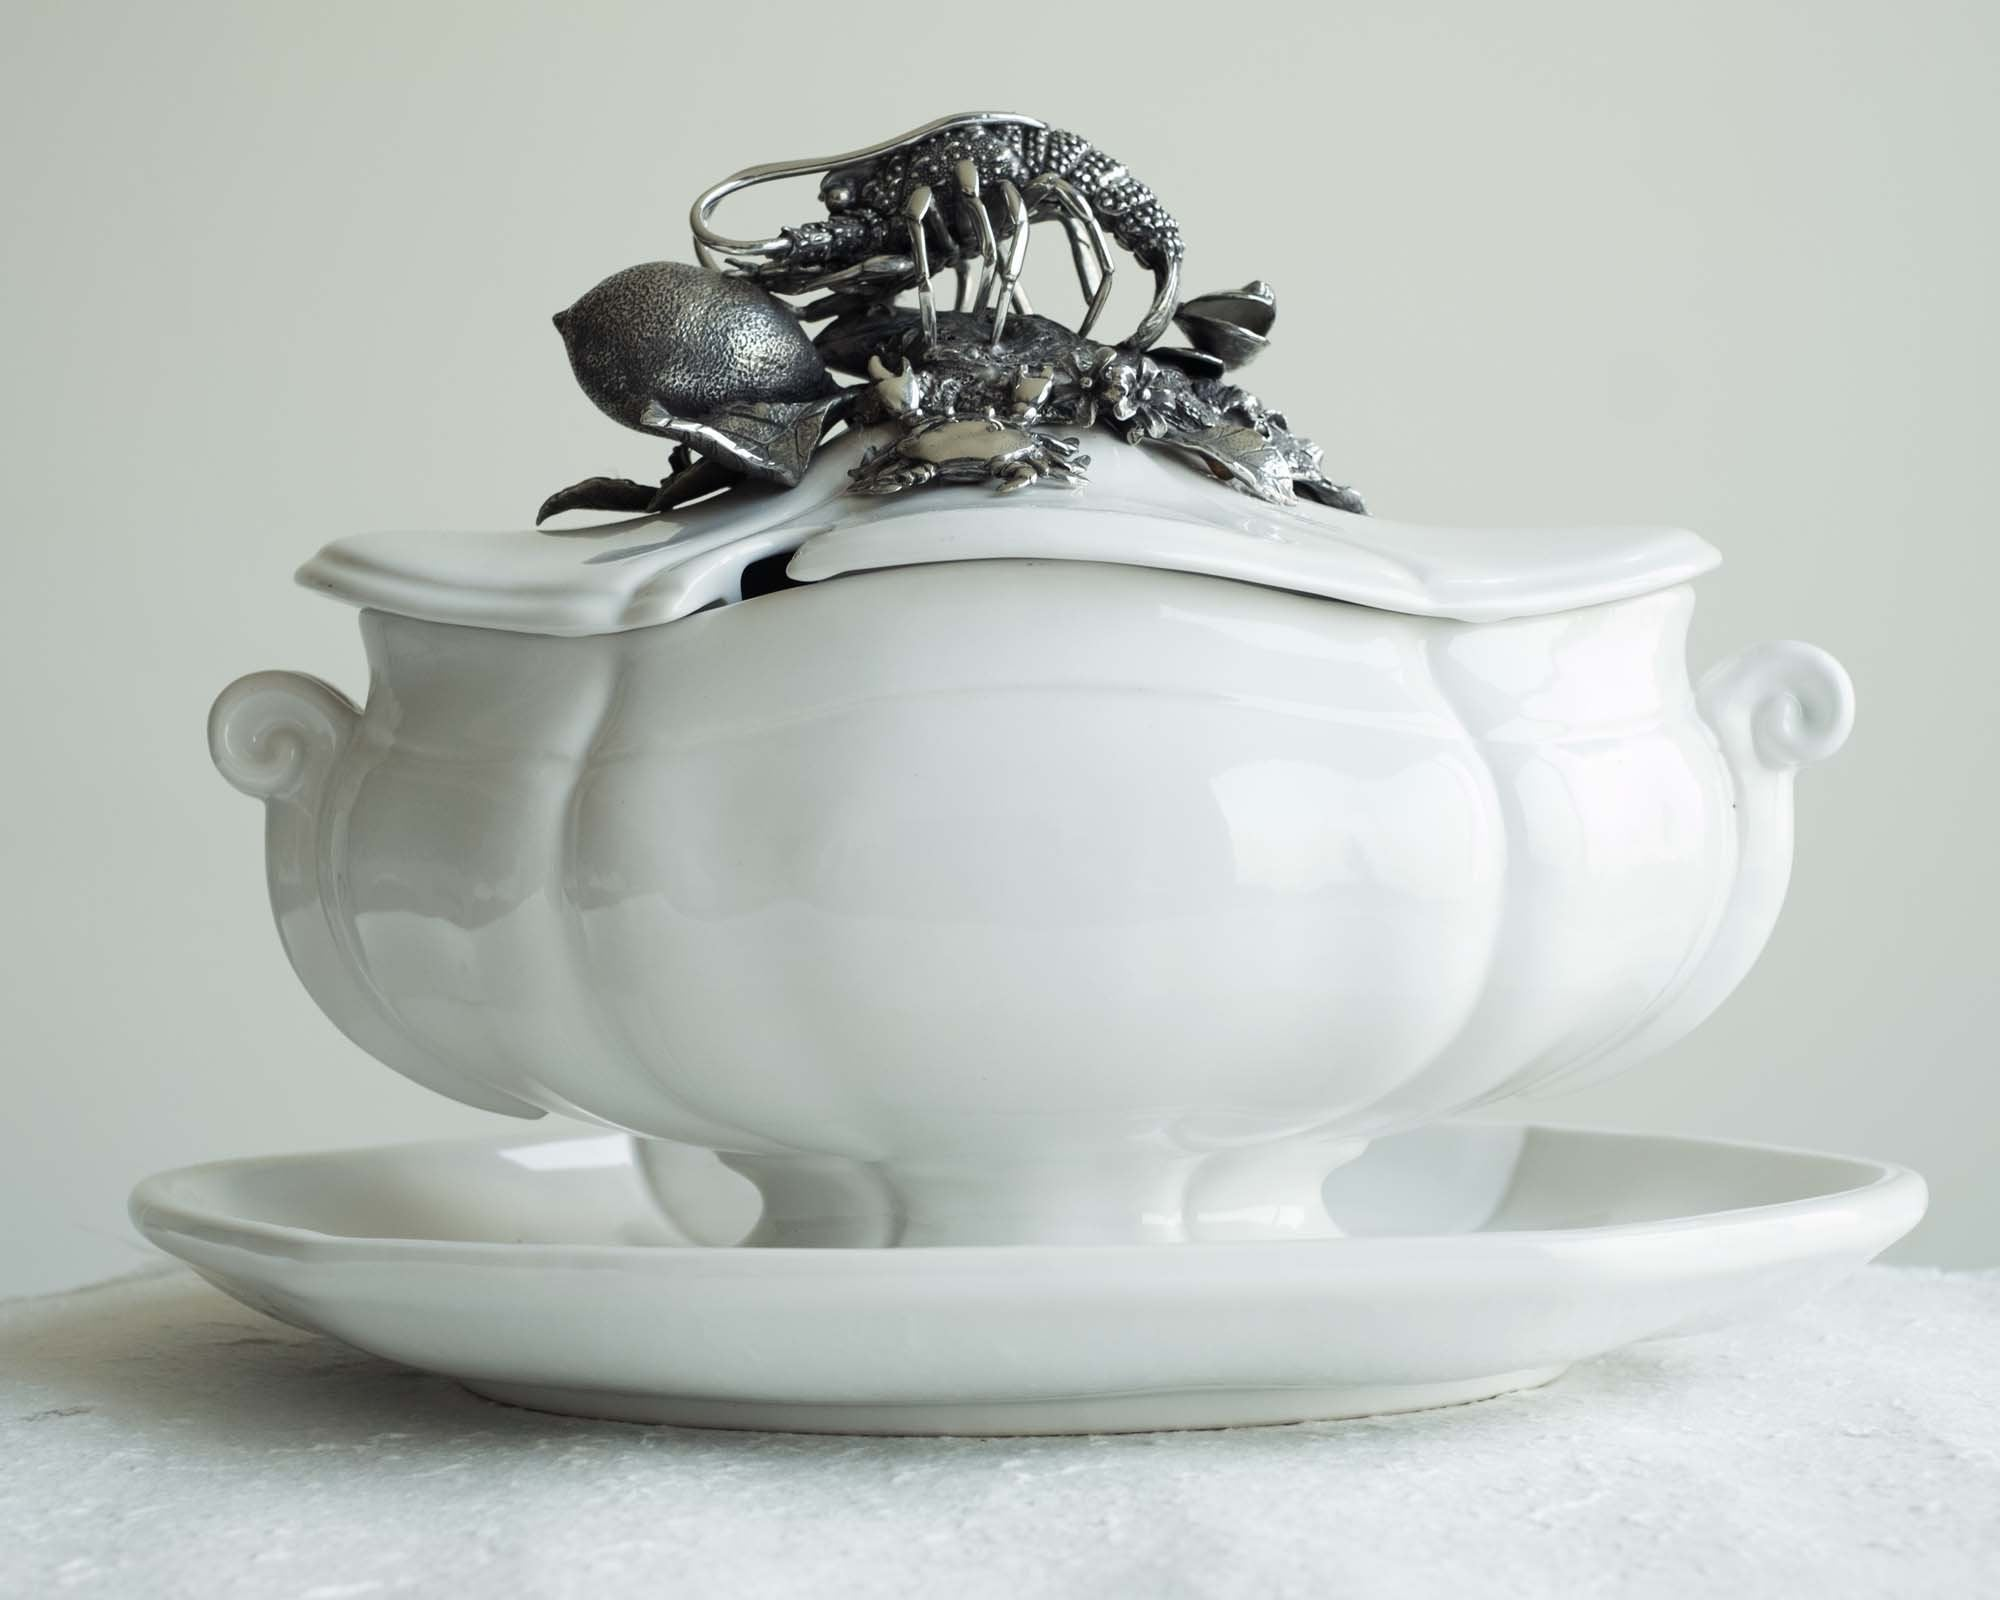 L01695 - Lobster Soup Tureen